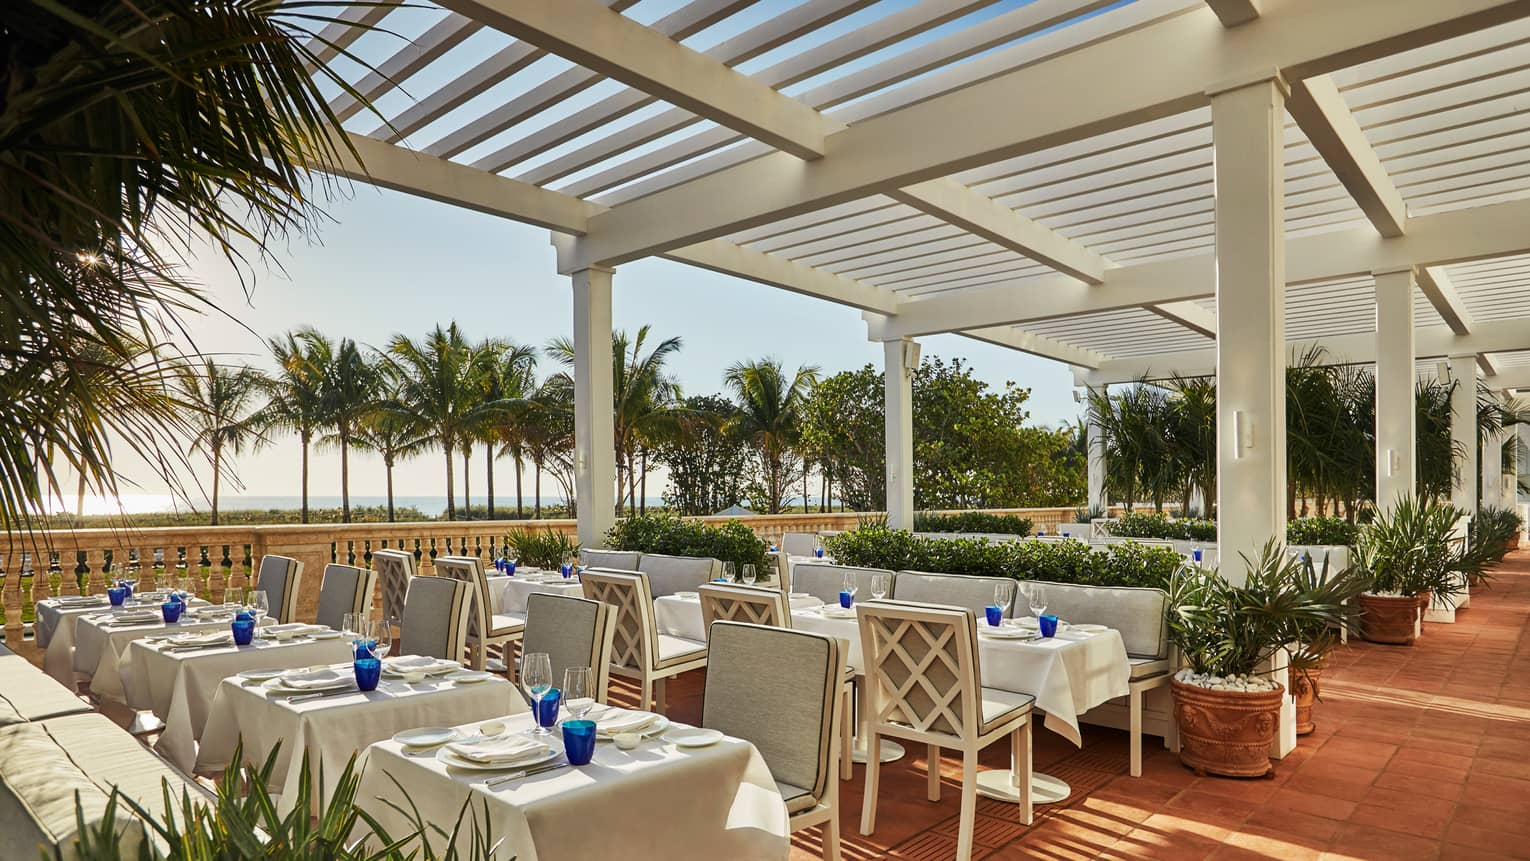 Large restaurant patio with formal dining tables under white pergola. Palm trees and beach in background